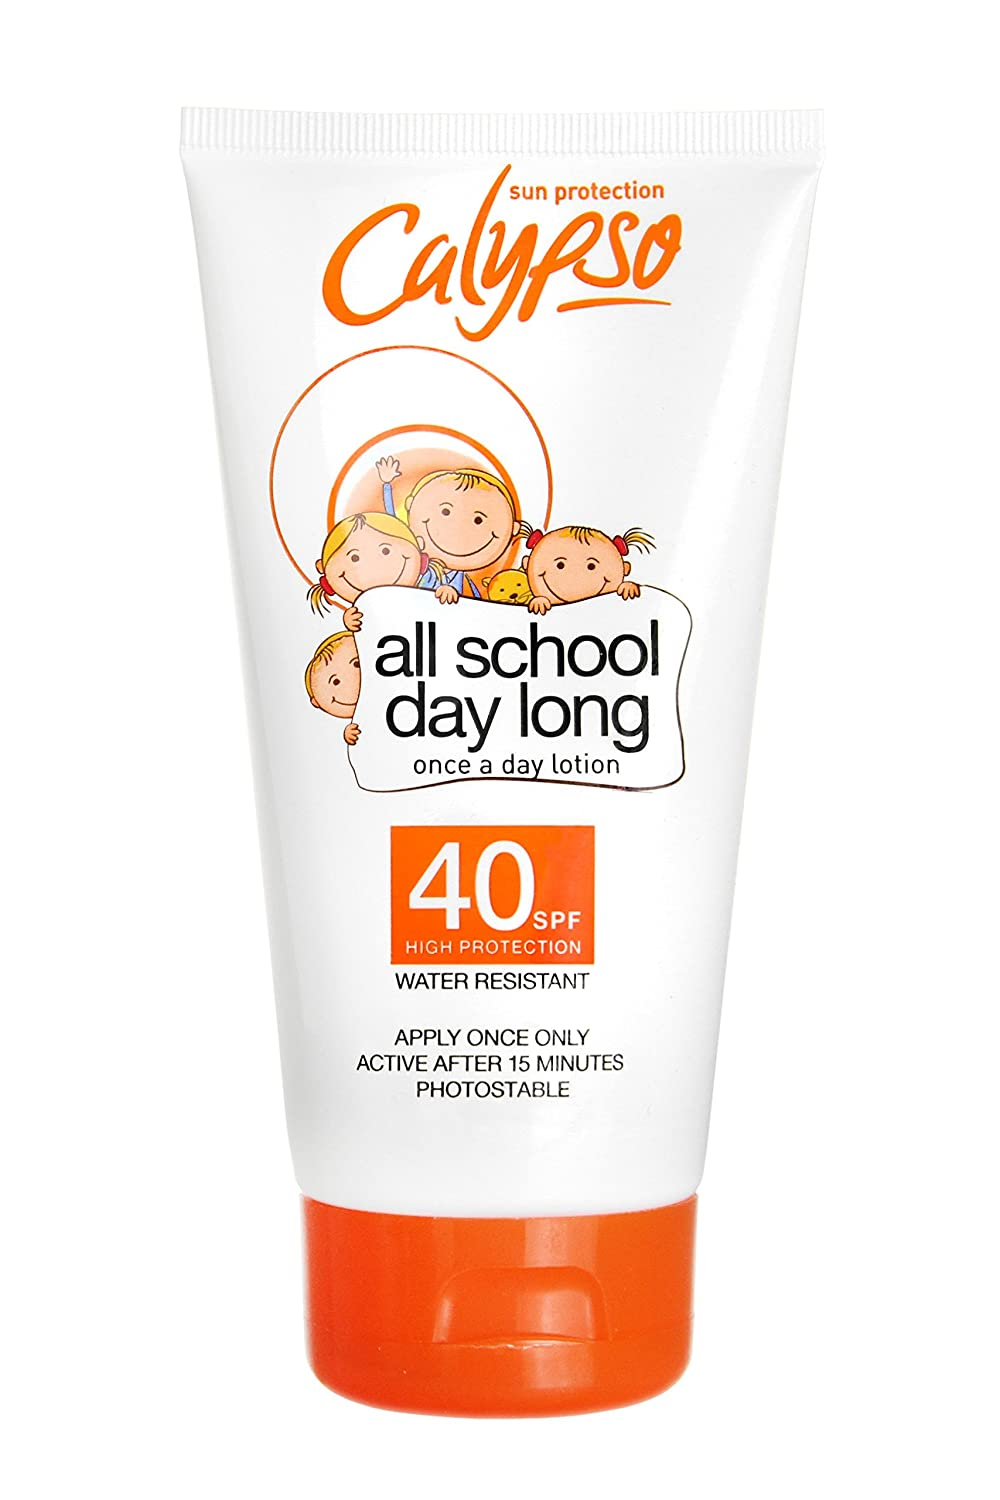 Calypso All School Day Long with SP40 Linco Care Ltd CYCALC40A